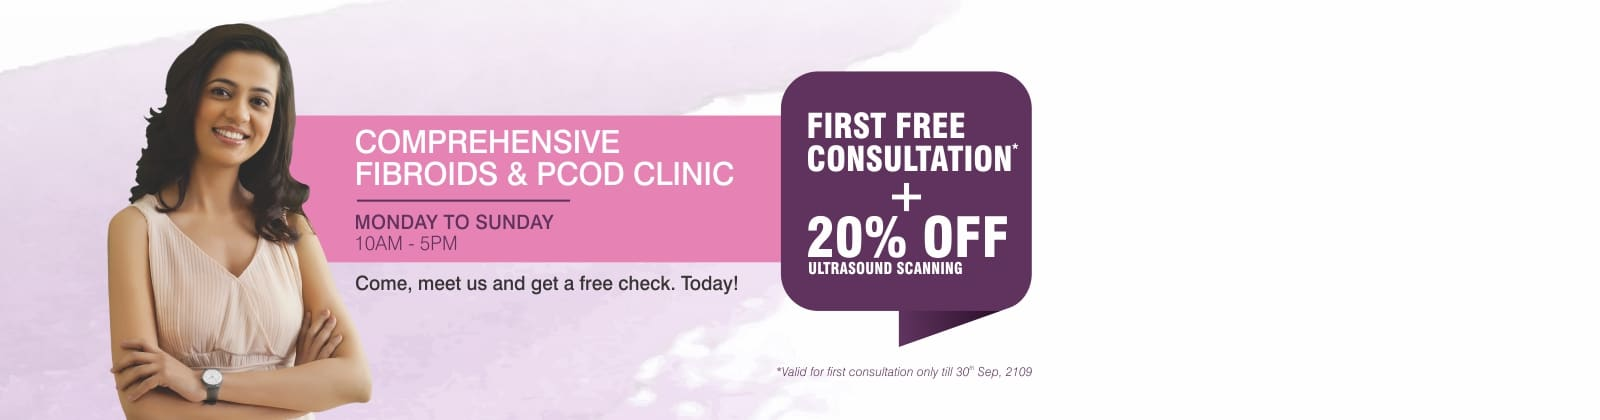 Fibroids-PCOD-Web-Banner